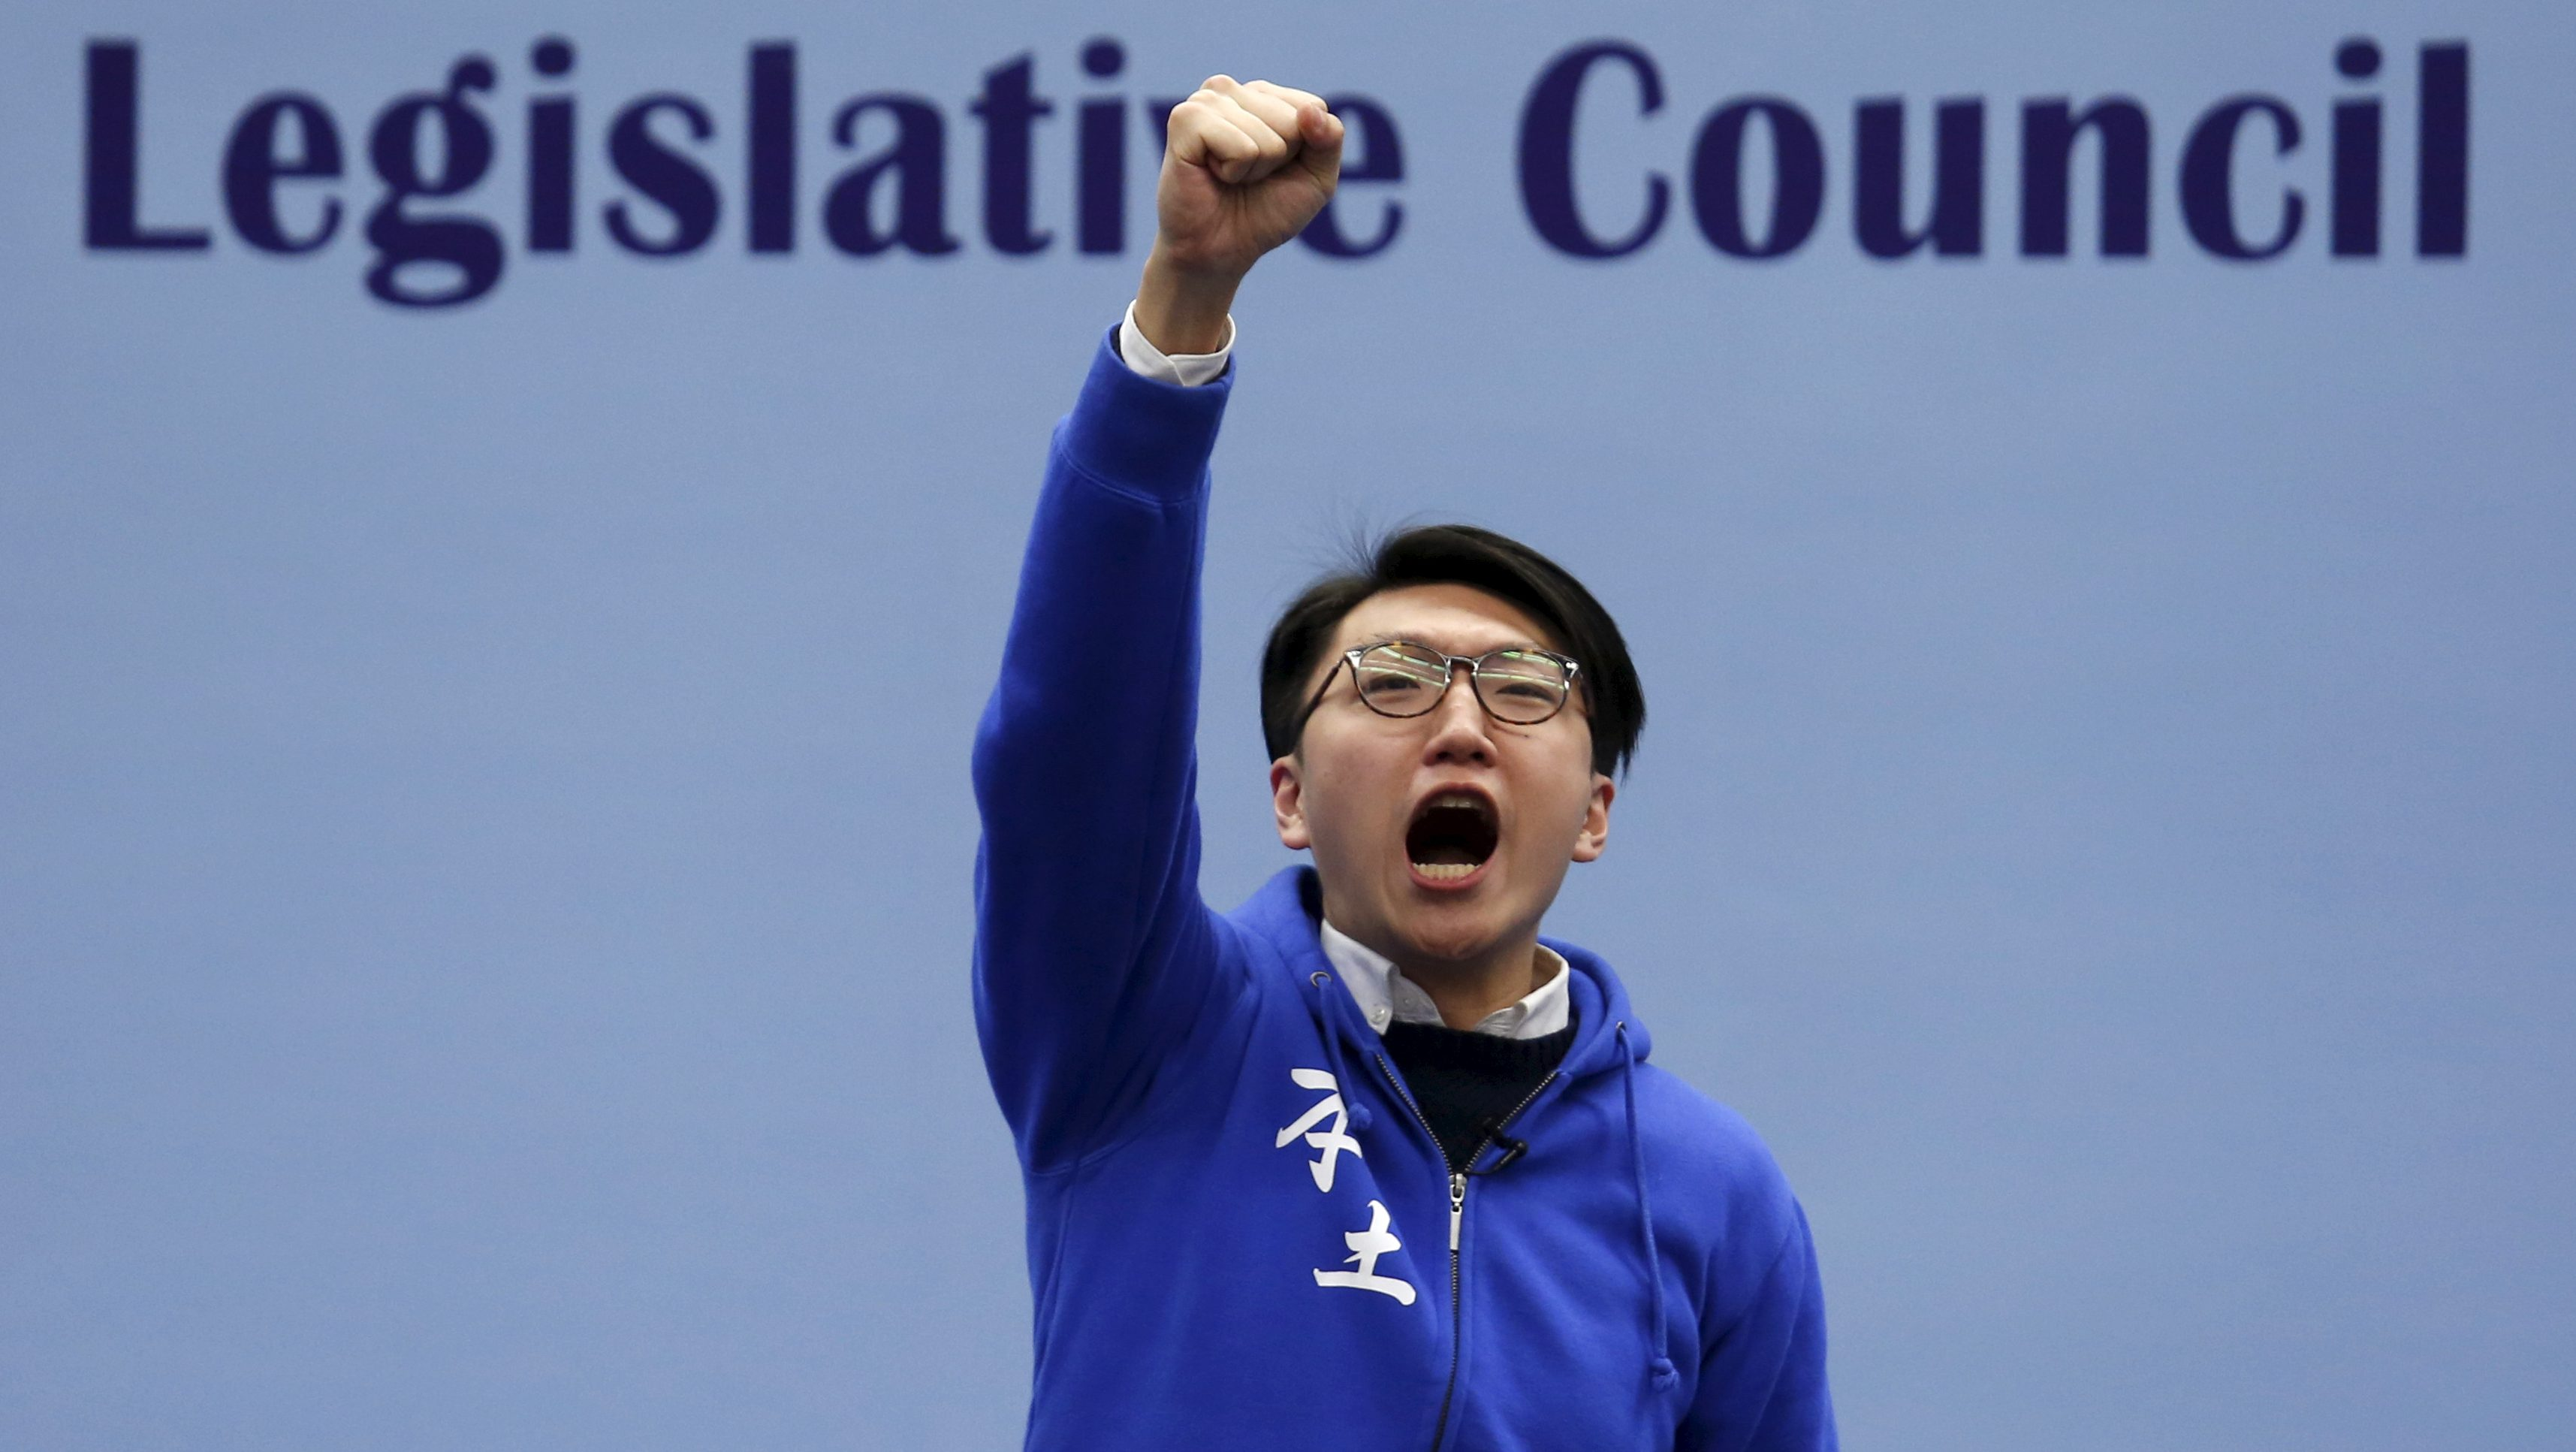 Edward Leung, a candidate from the Hong Kong Indigenous, chants slogans on the podium before the final poll result is announced in Hong Kong, China February 29, 2016, after a Legislative Council by-election on Sunday.   REUTERS/Bobby Yip - RTS8EYN